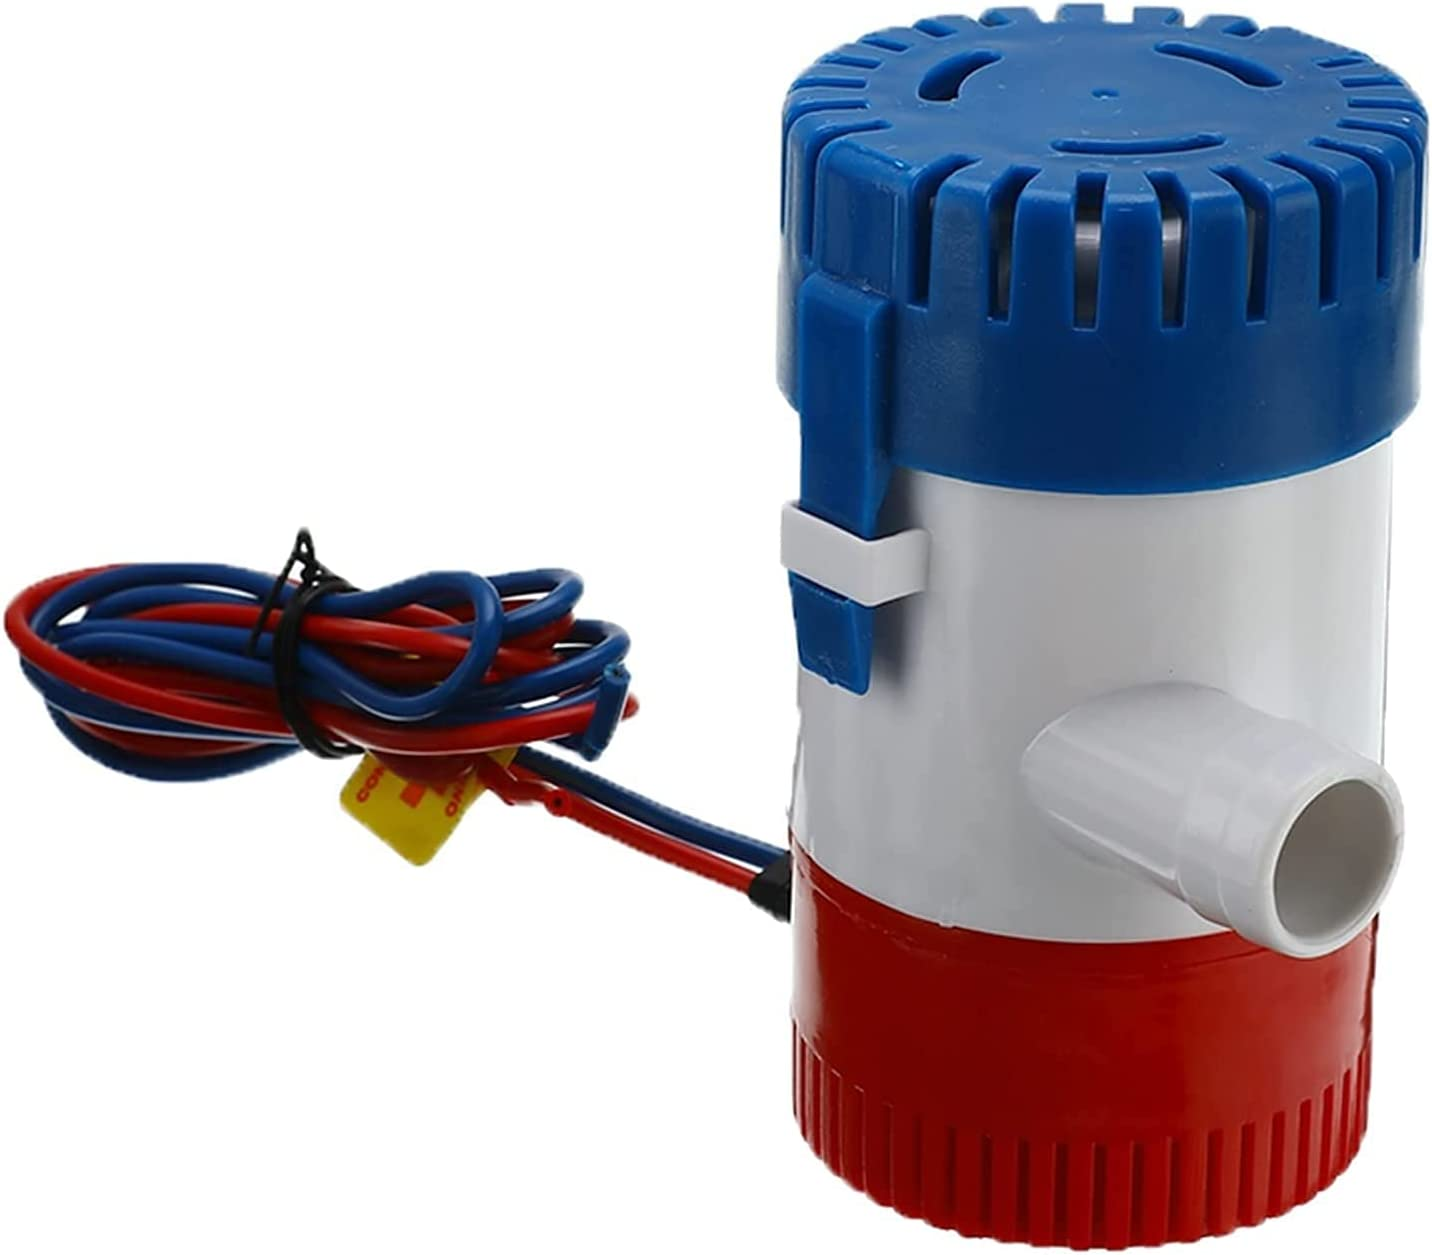 DAYDAY helper Automatic Submersible Small Bilge 12 Pump Max 68% OFF 24V NEW before selling Boat